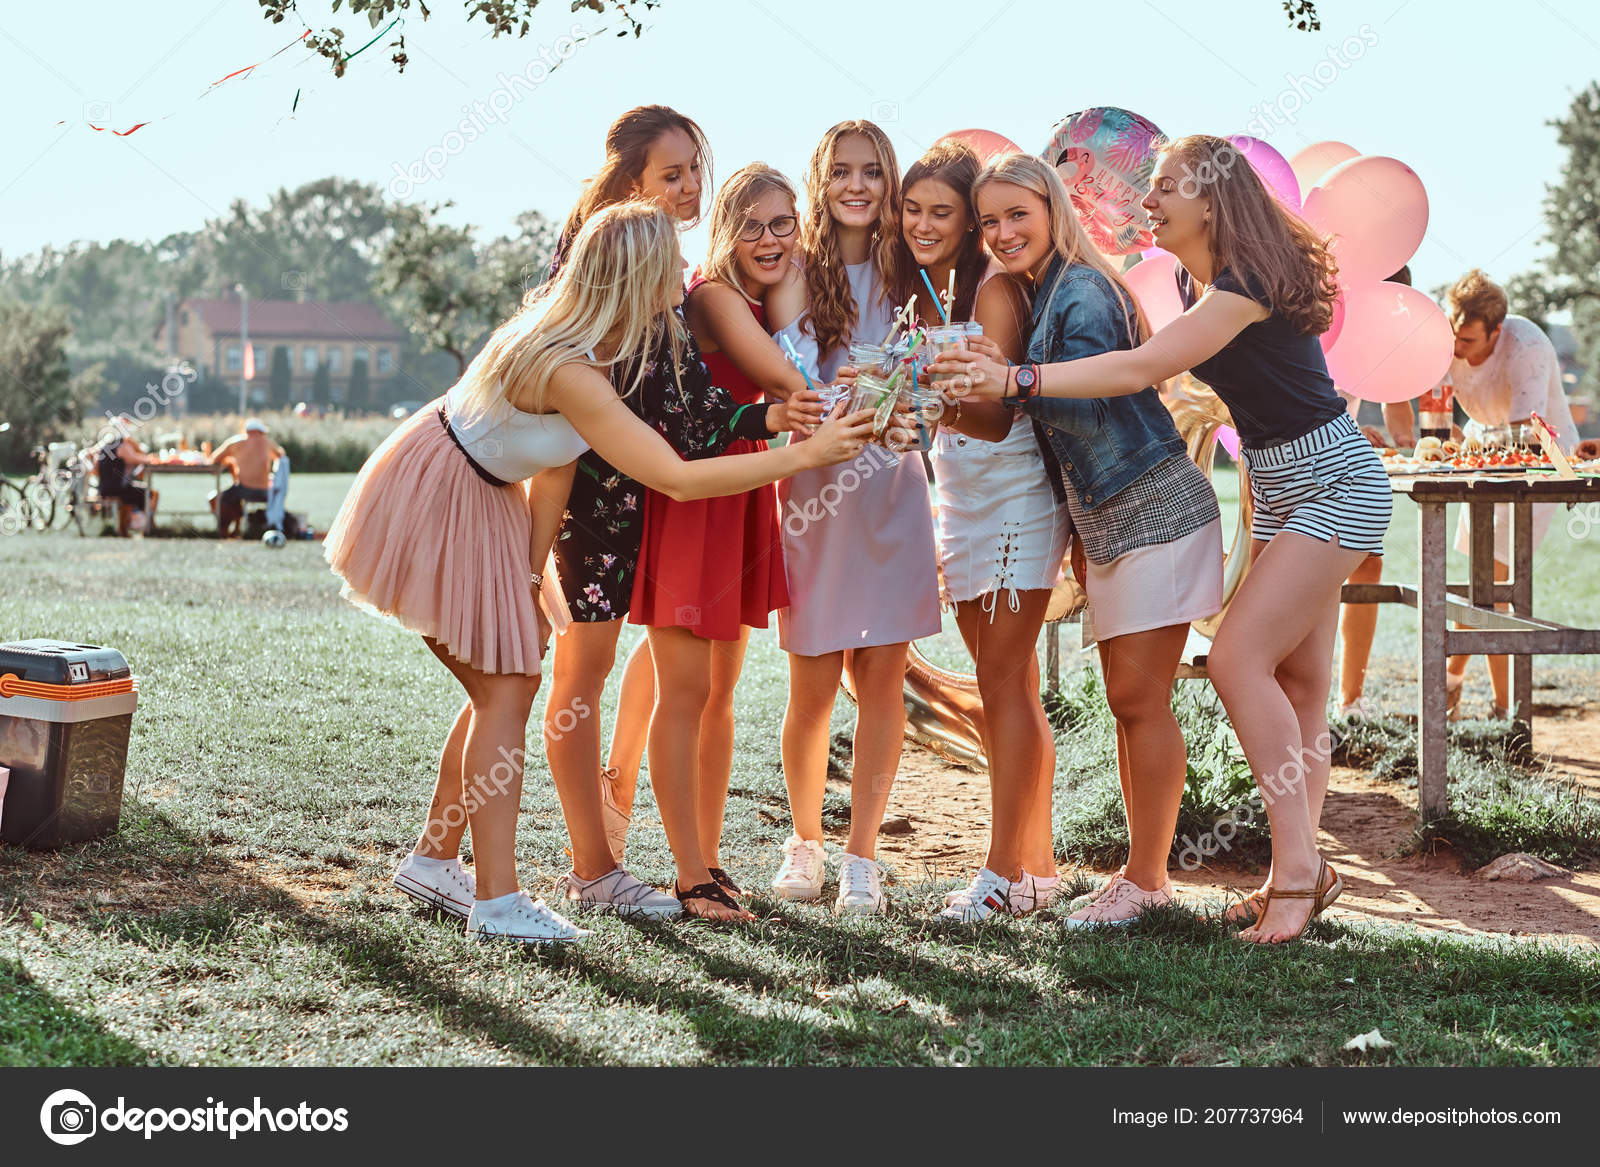 Group Of Girlfriends Having Fun Together Celebrating A Birthday At